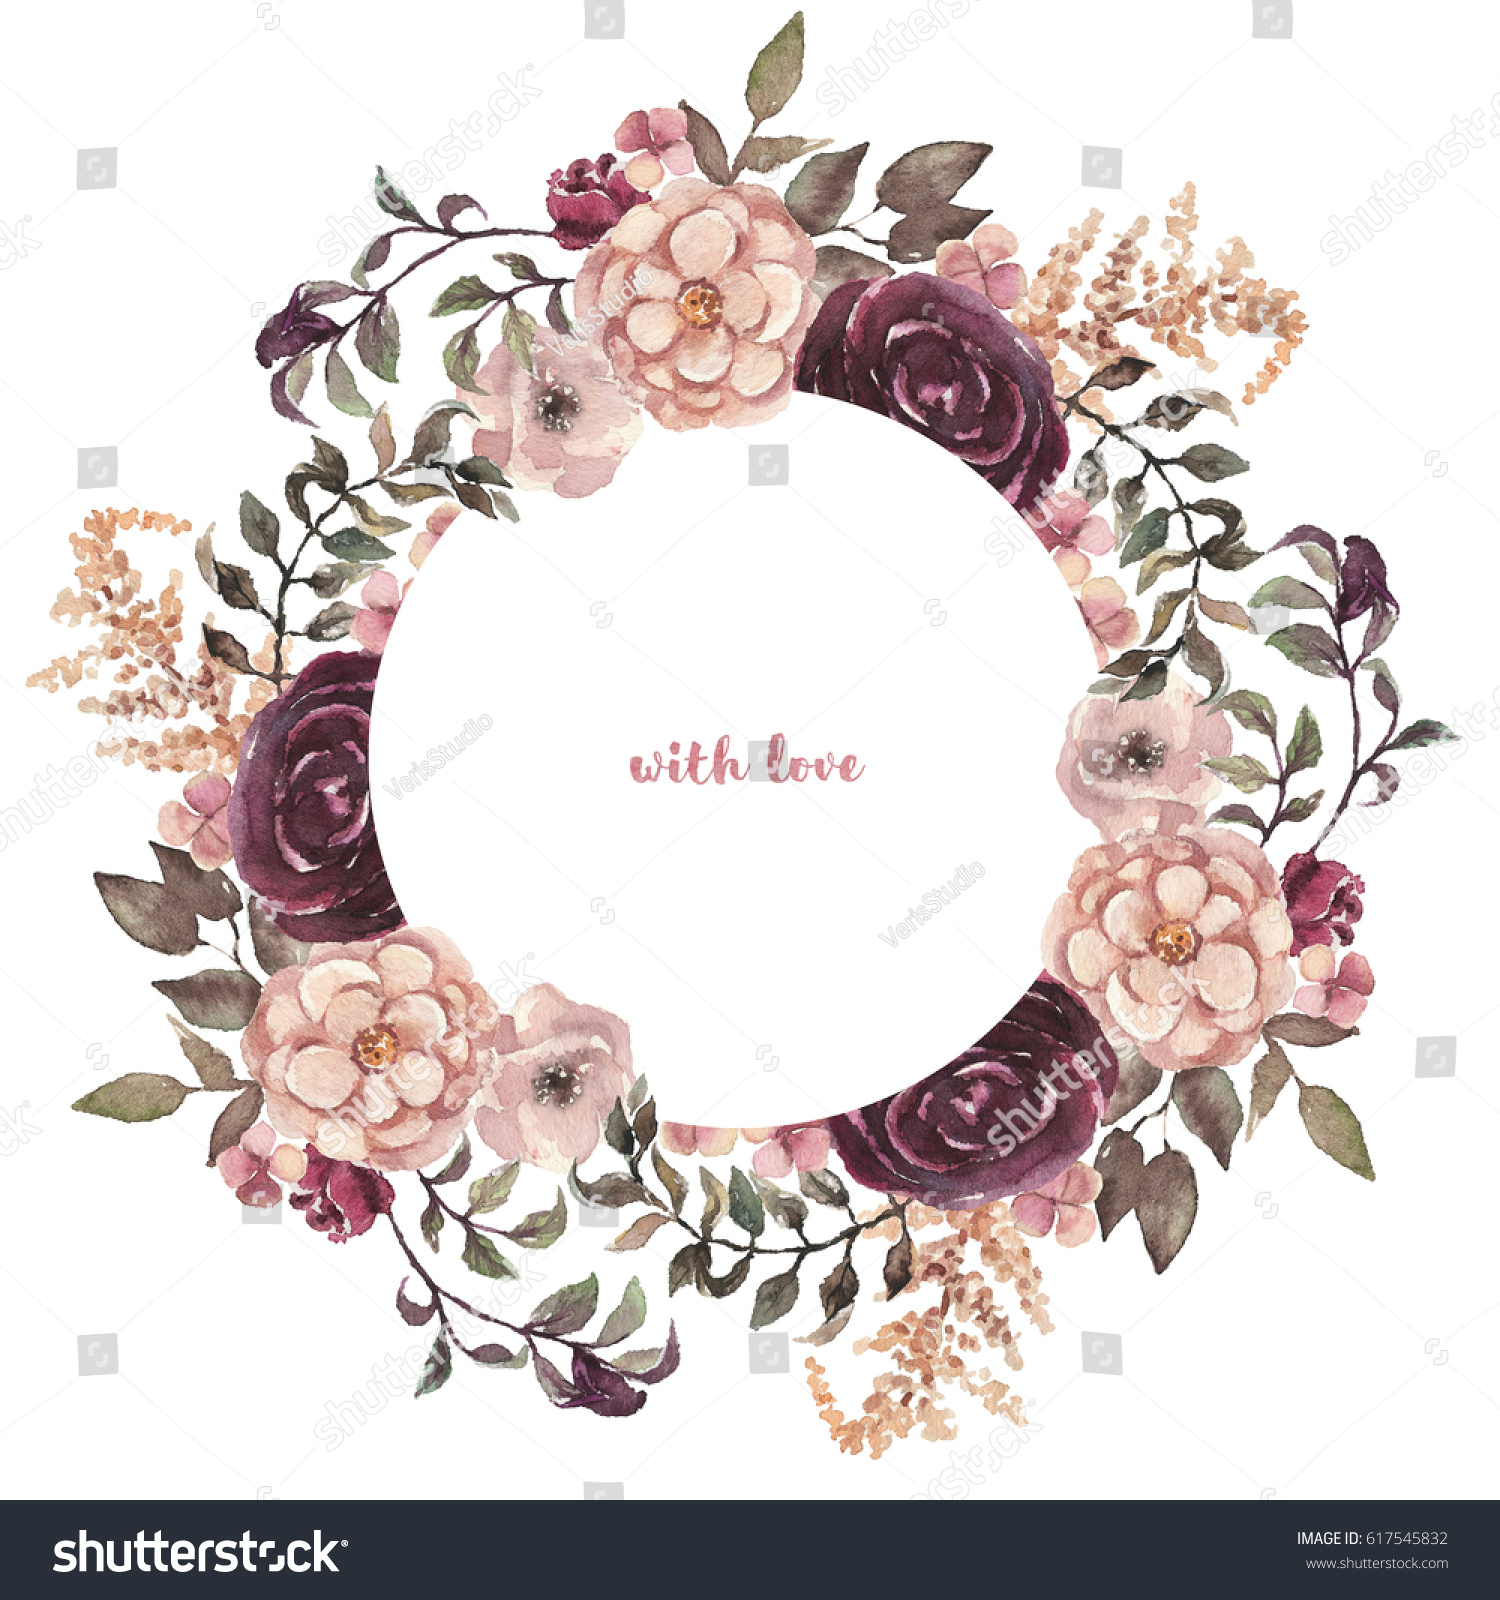 Watercolor Floral Illustration Flower Round Wreath Stock ...